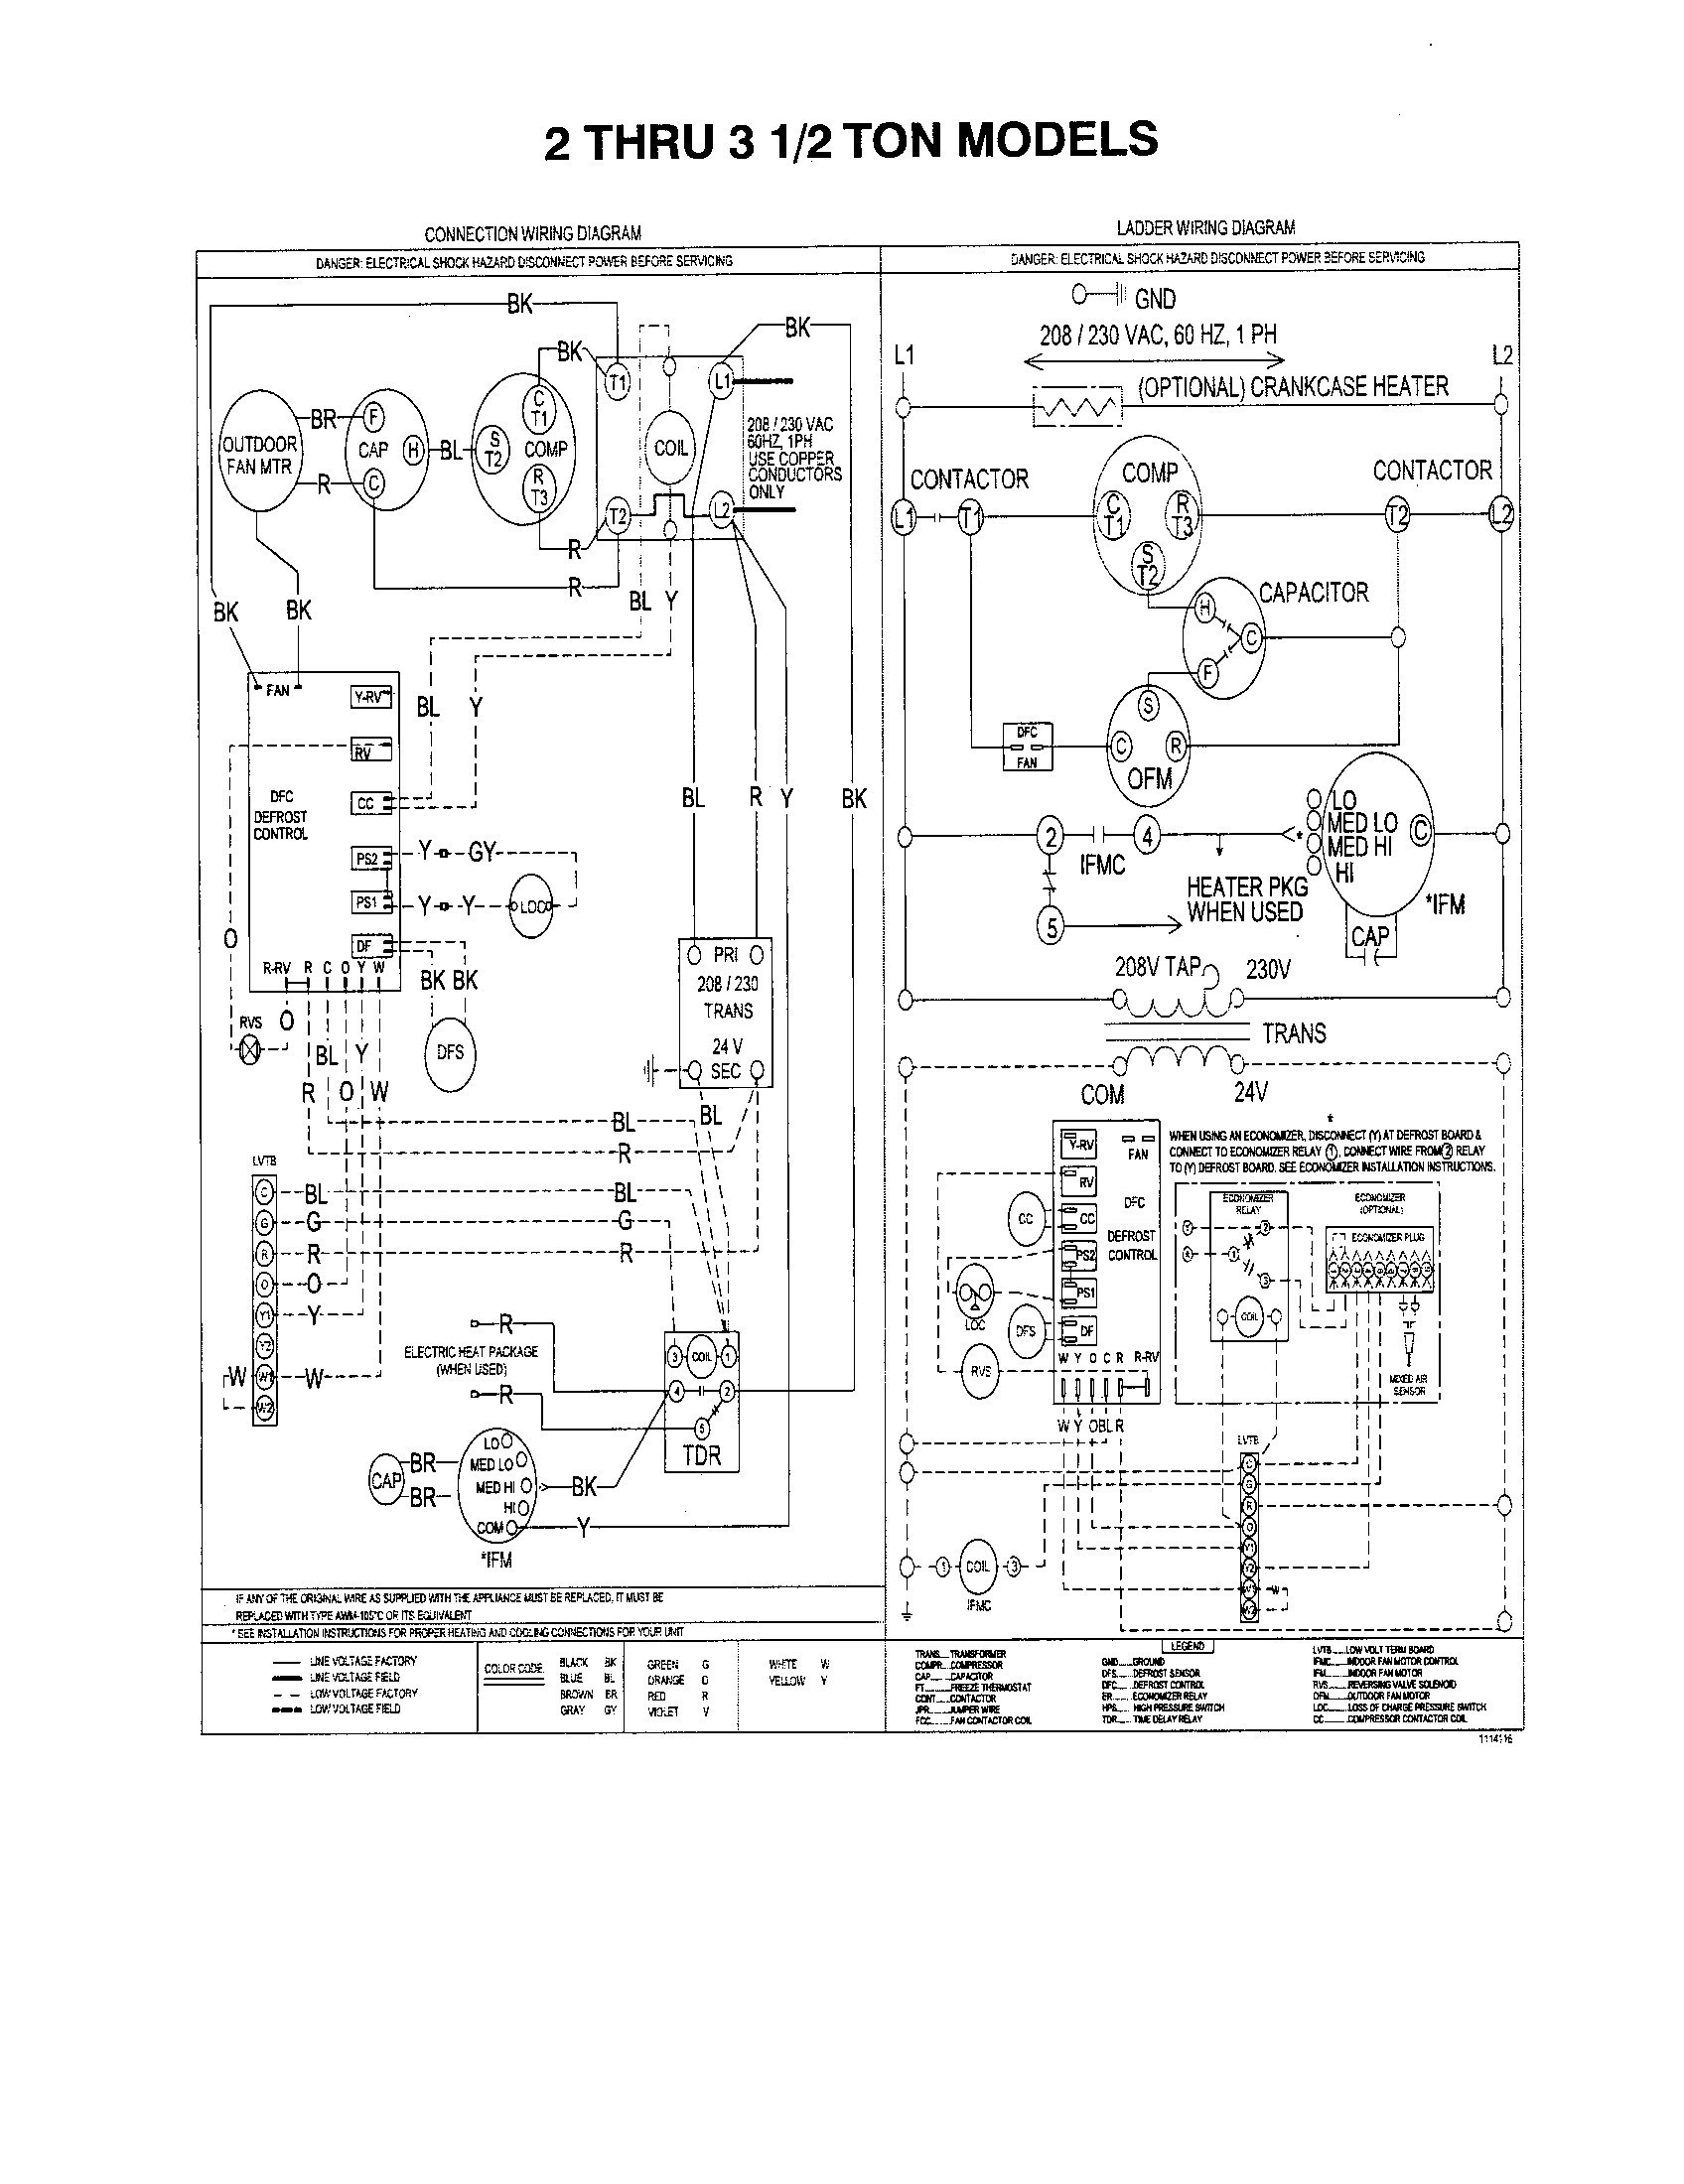 york wiring schematics york ac schematics york d7cg wiring diagram - wiring diagram #5